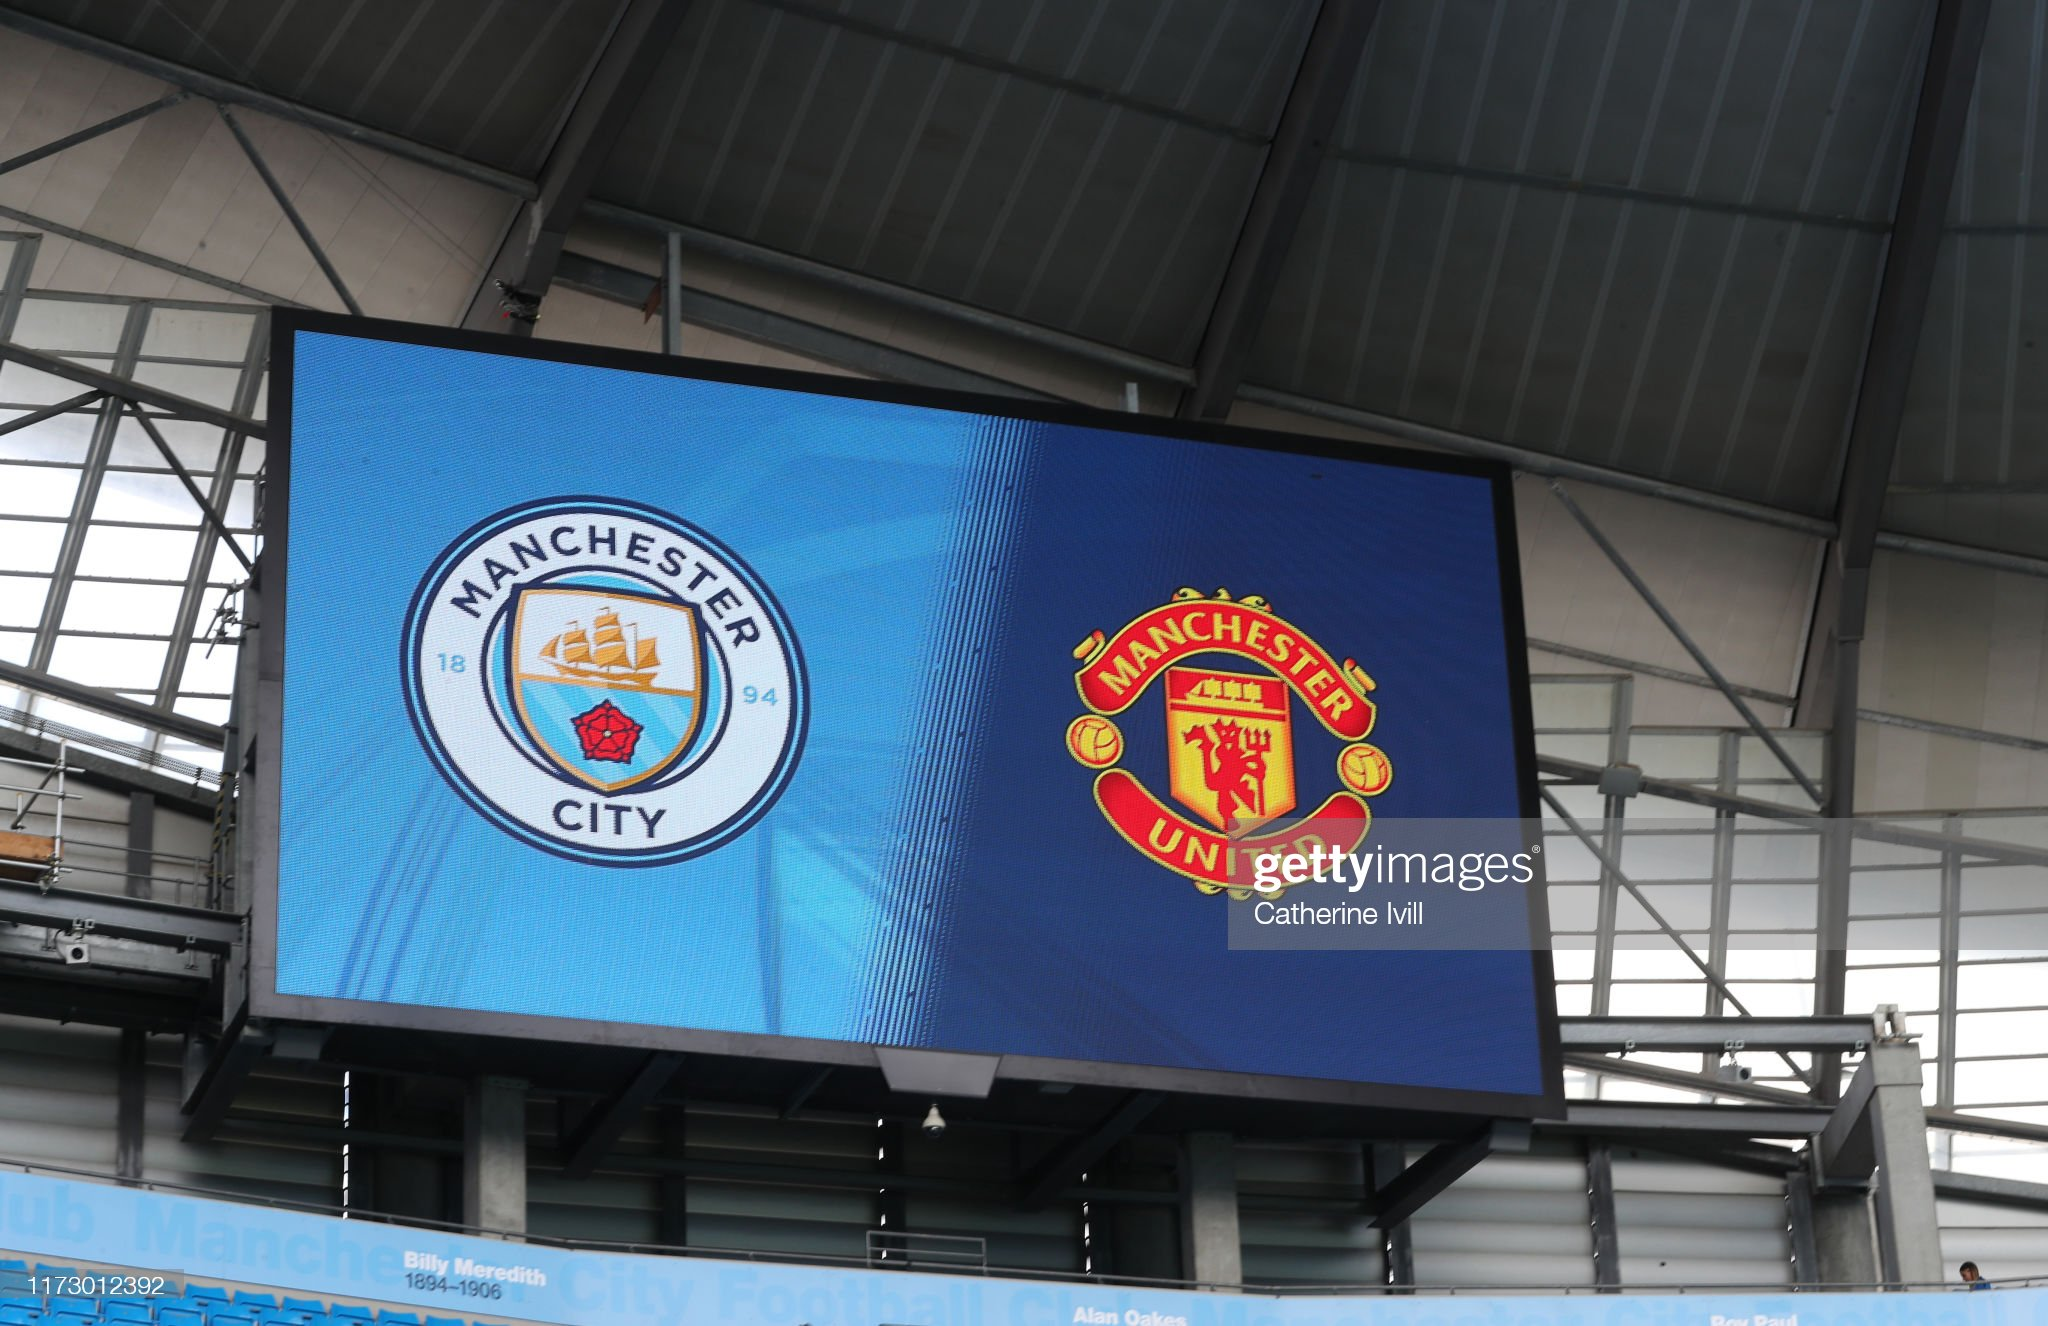 Manchester City v Manchester United preview, prediction and odds